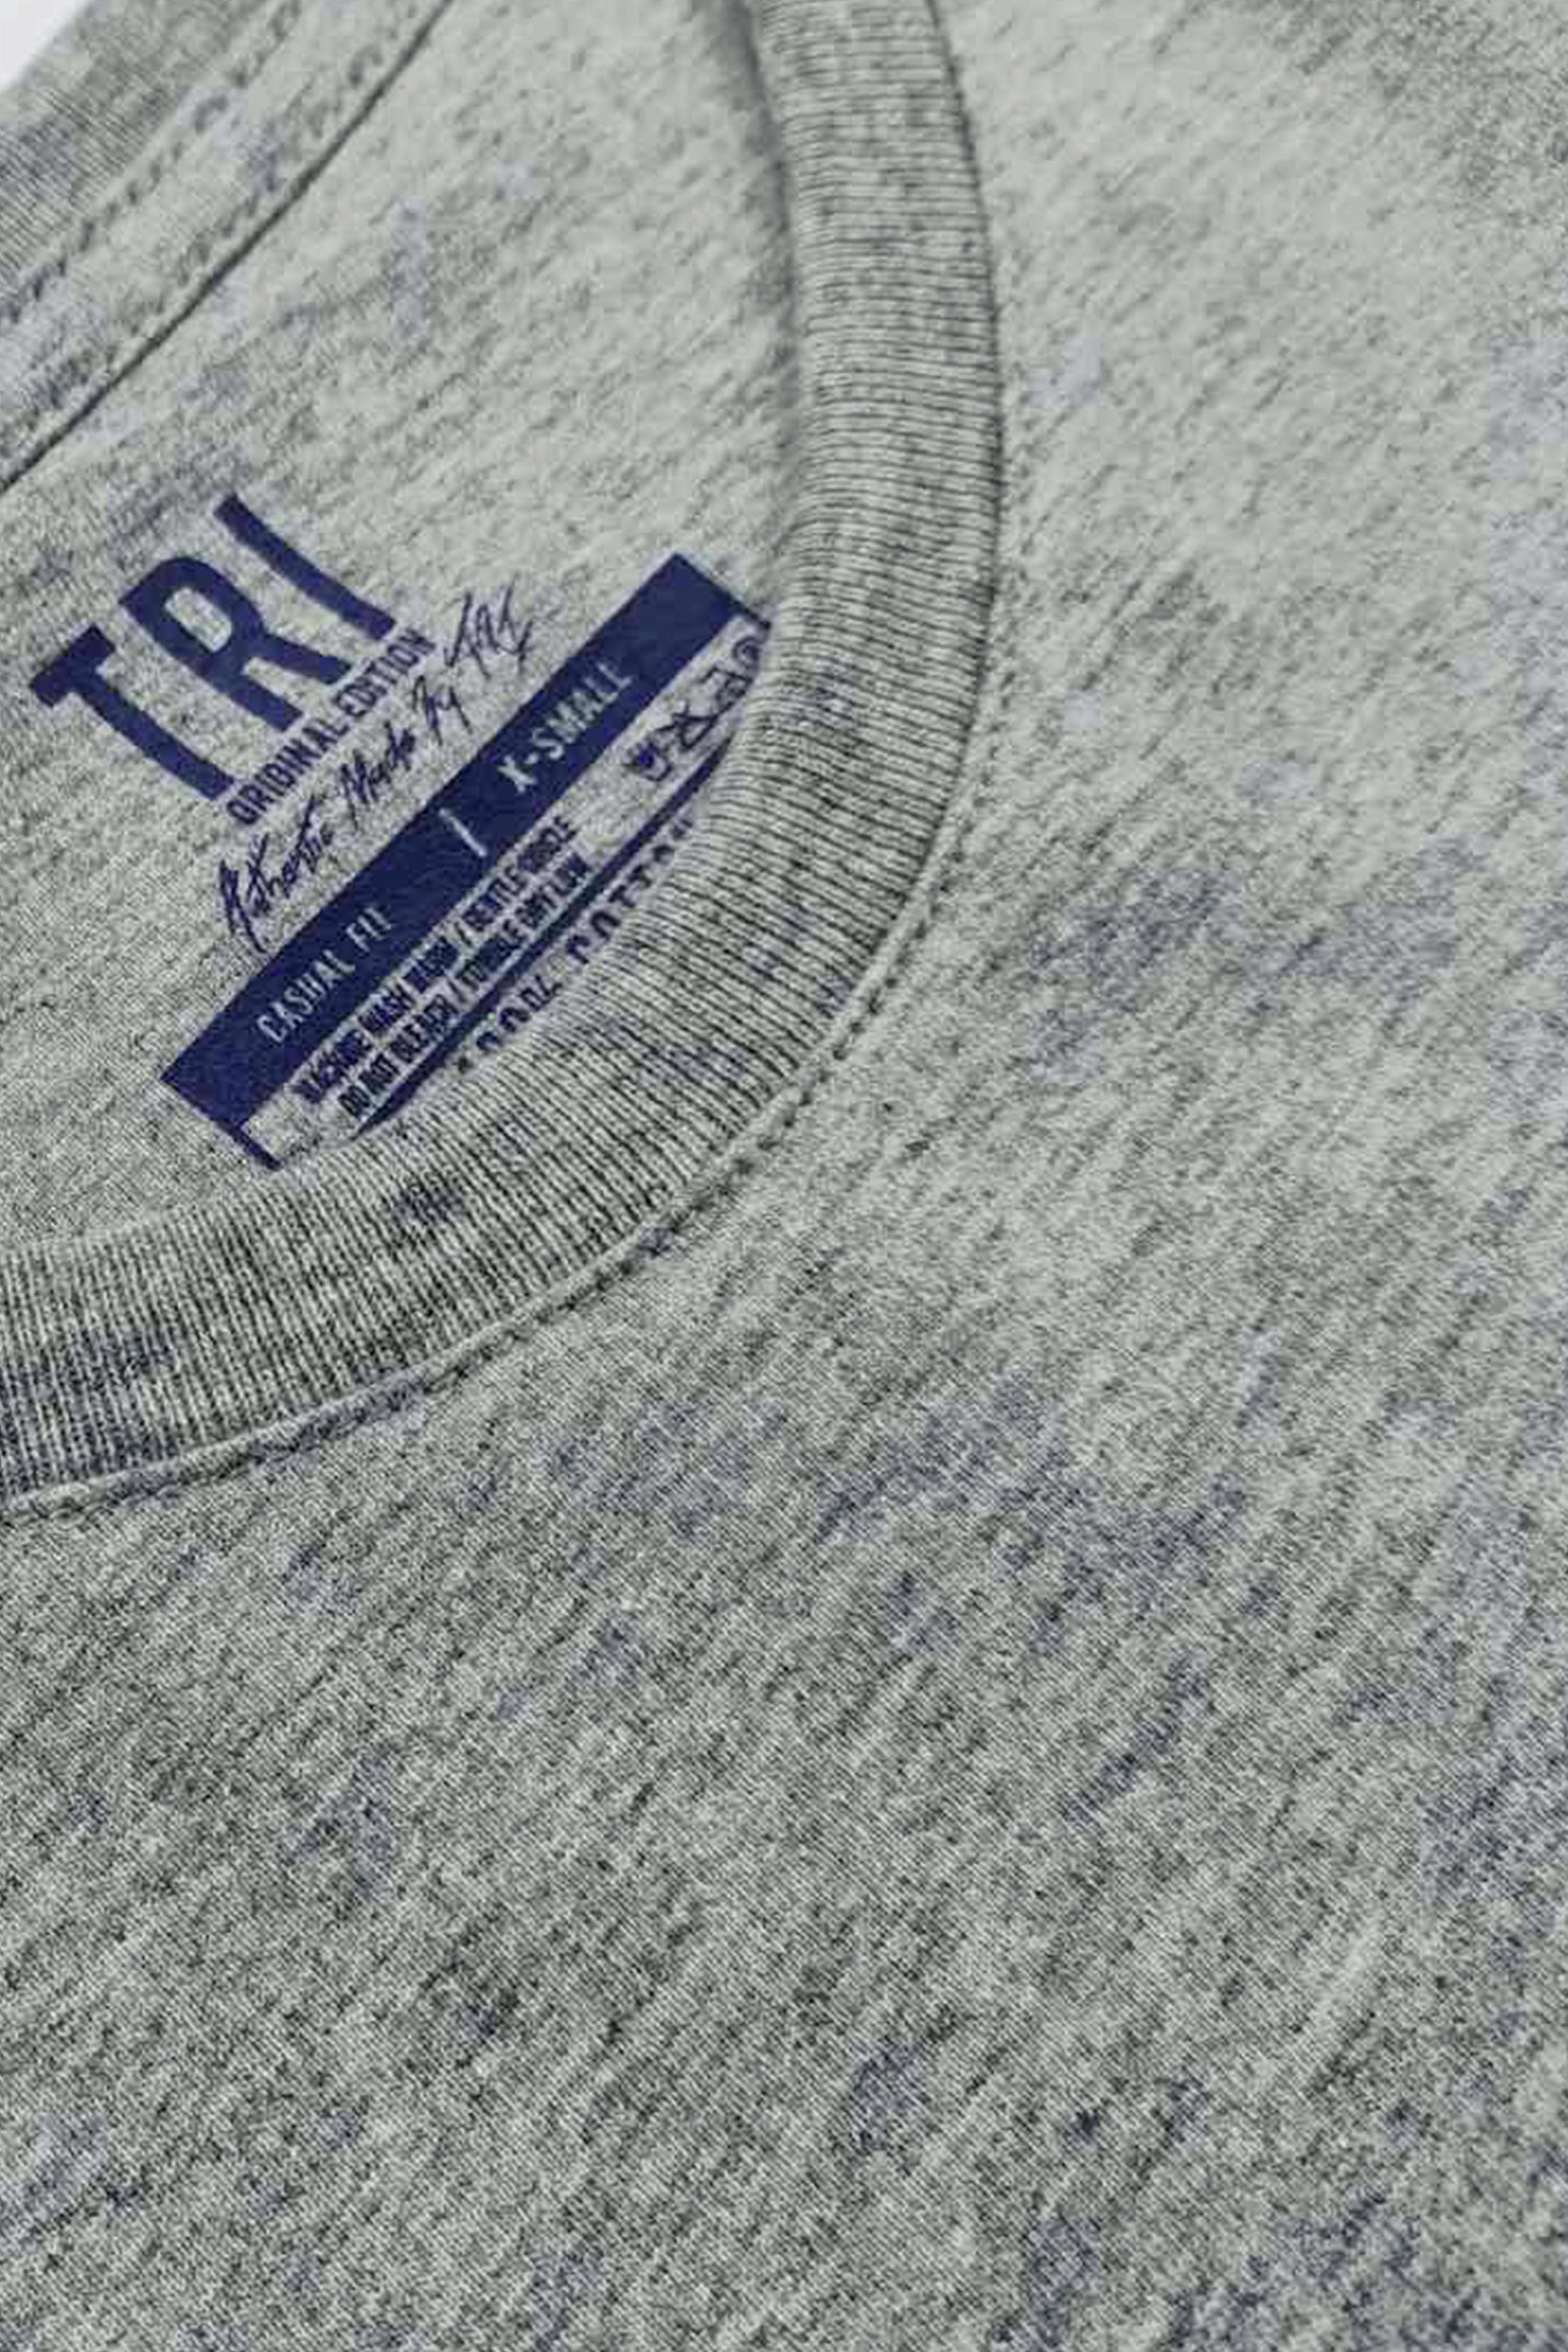 TRI Graphic T-Shirt T-8129